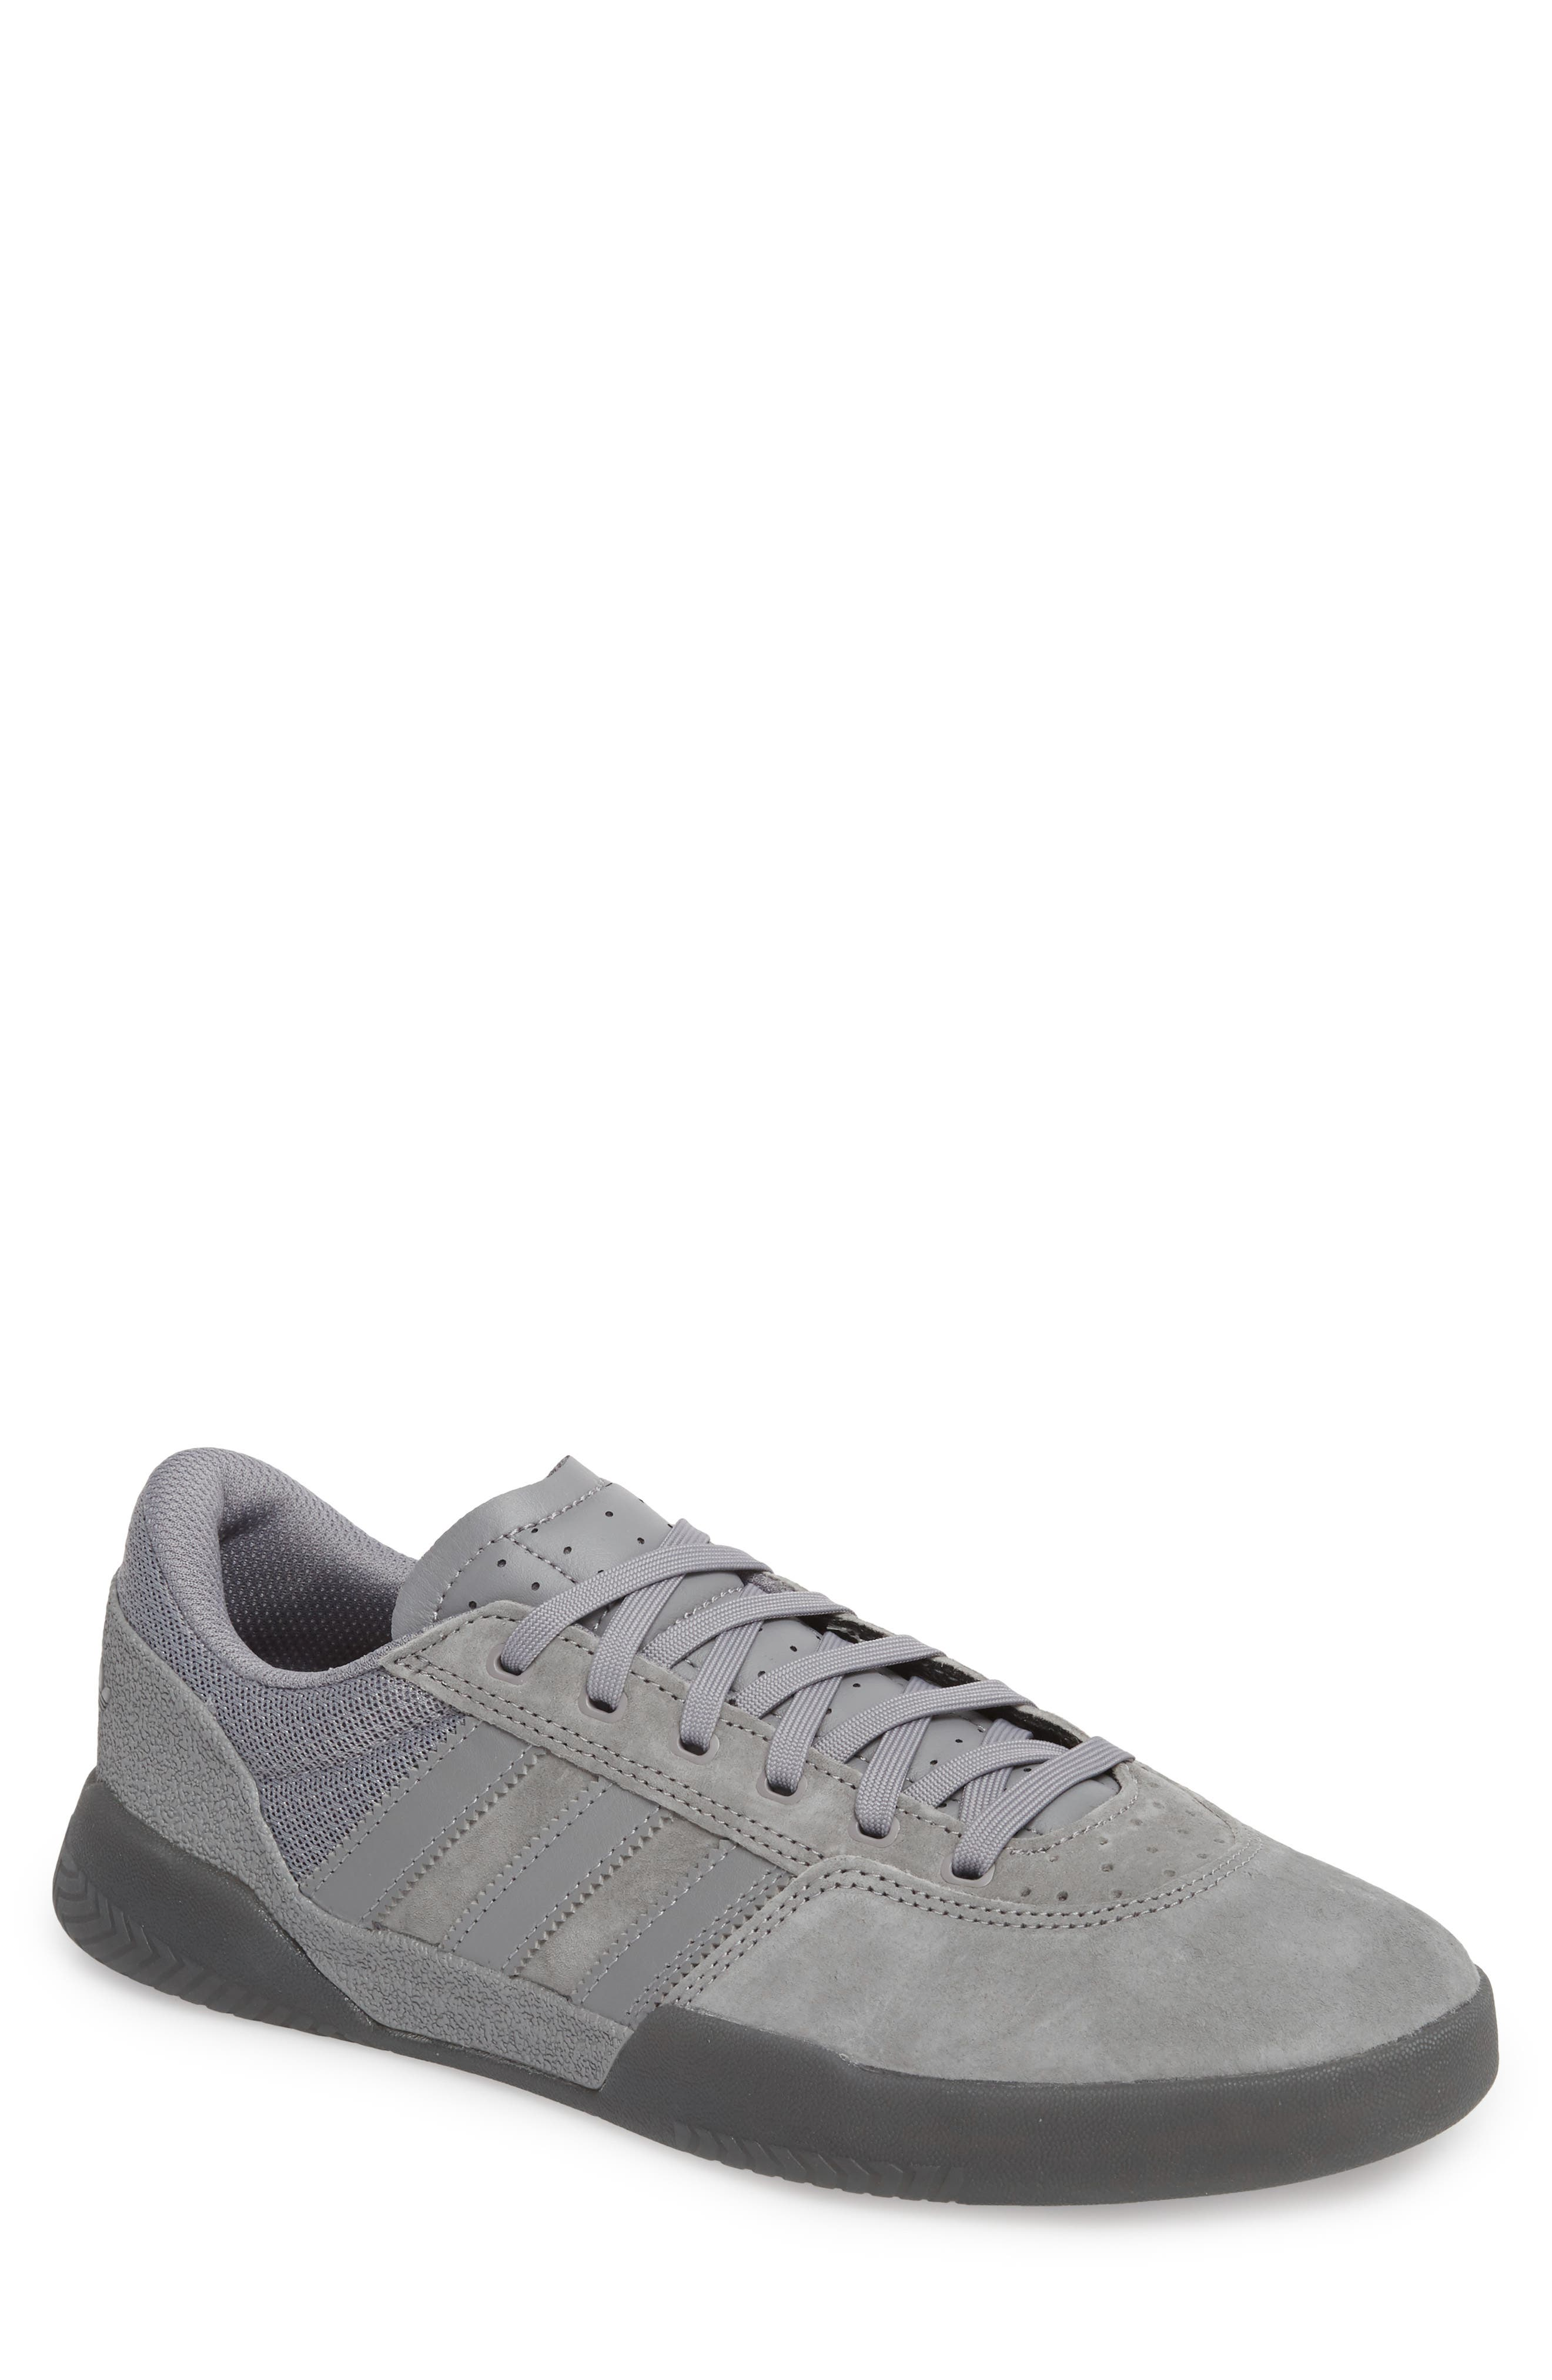 City Cup Sneaker,                         Main,                         color, Grey/ Gold